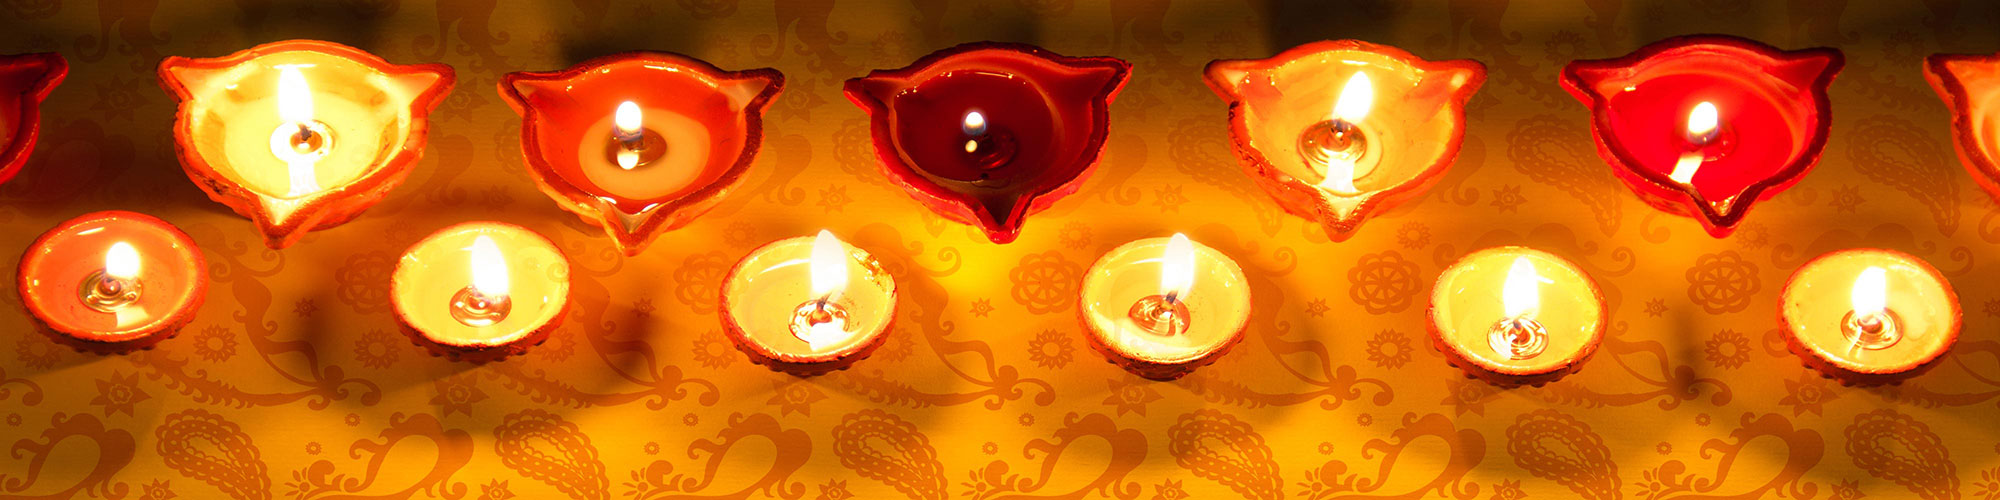 Kannada Indian Tea Lights Candles